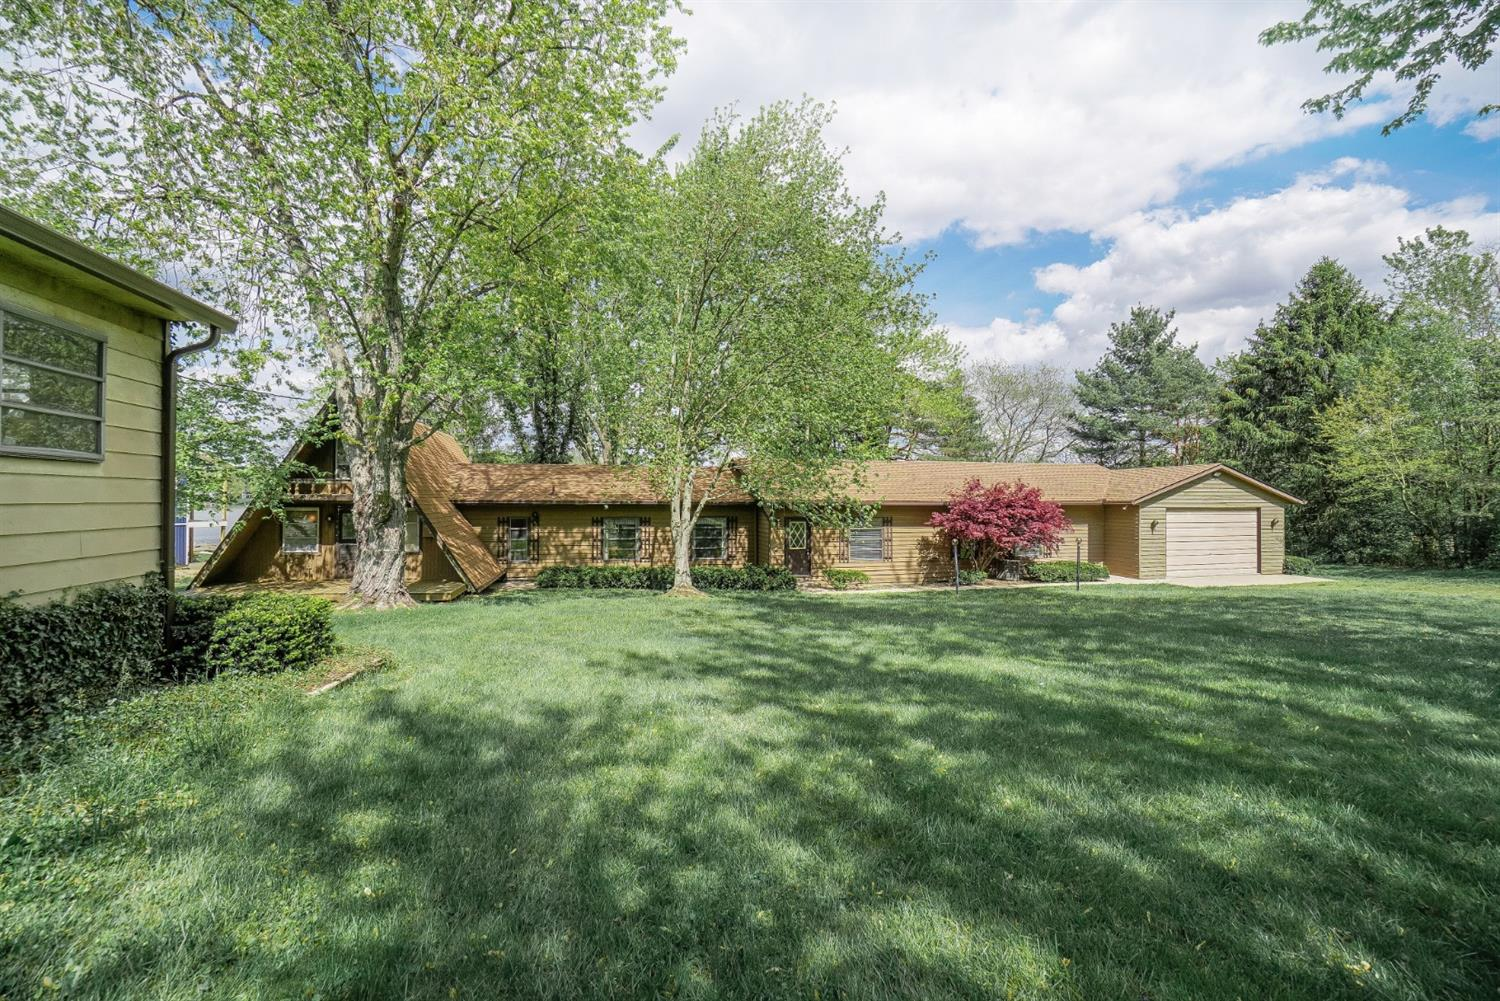 1097 1098 Stuttgart Dr Perry Twp OH